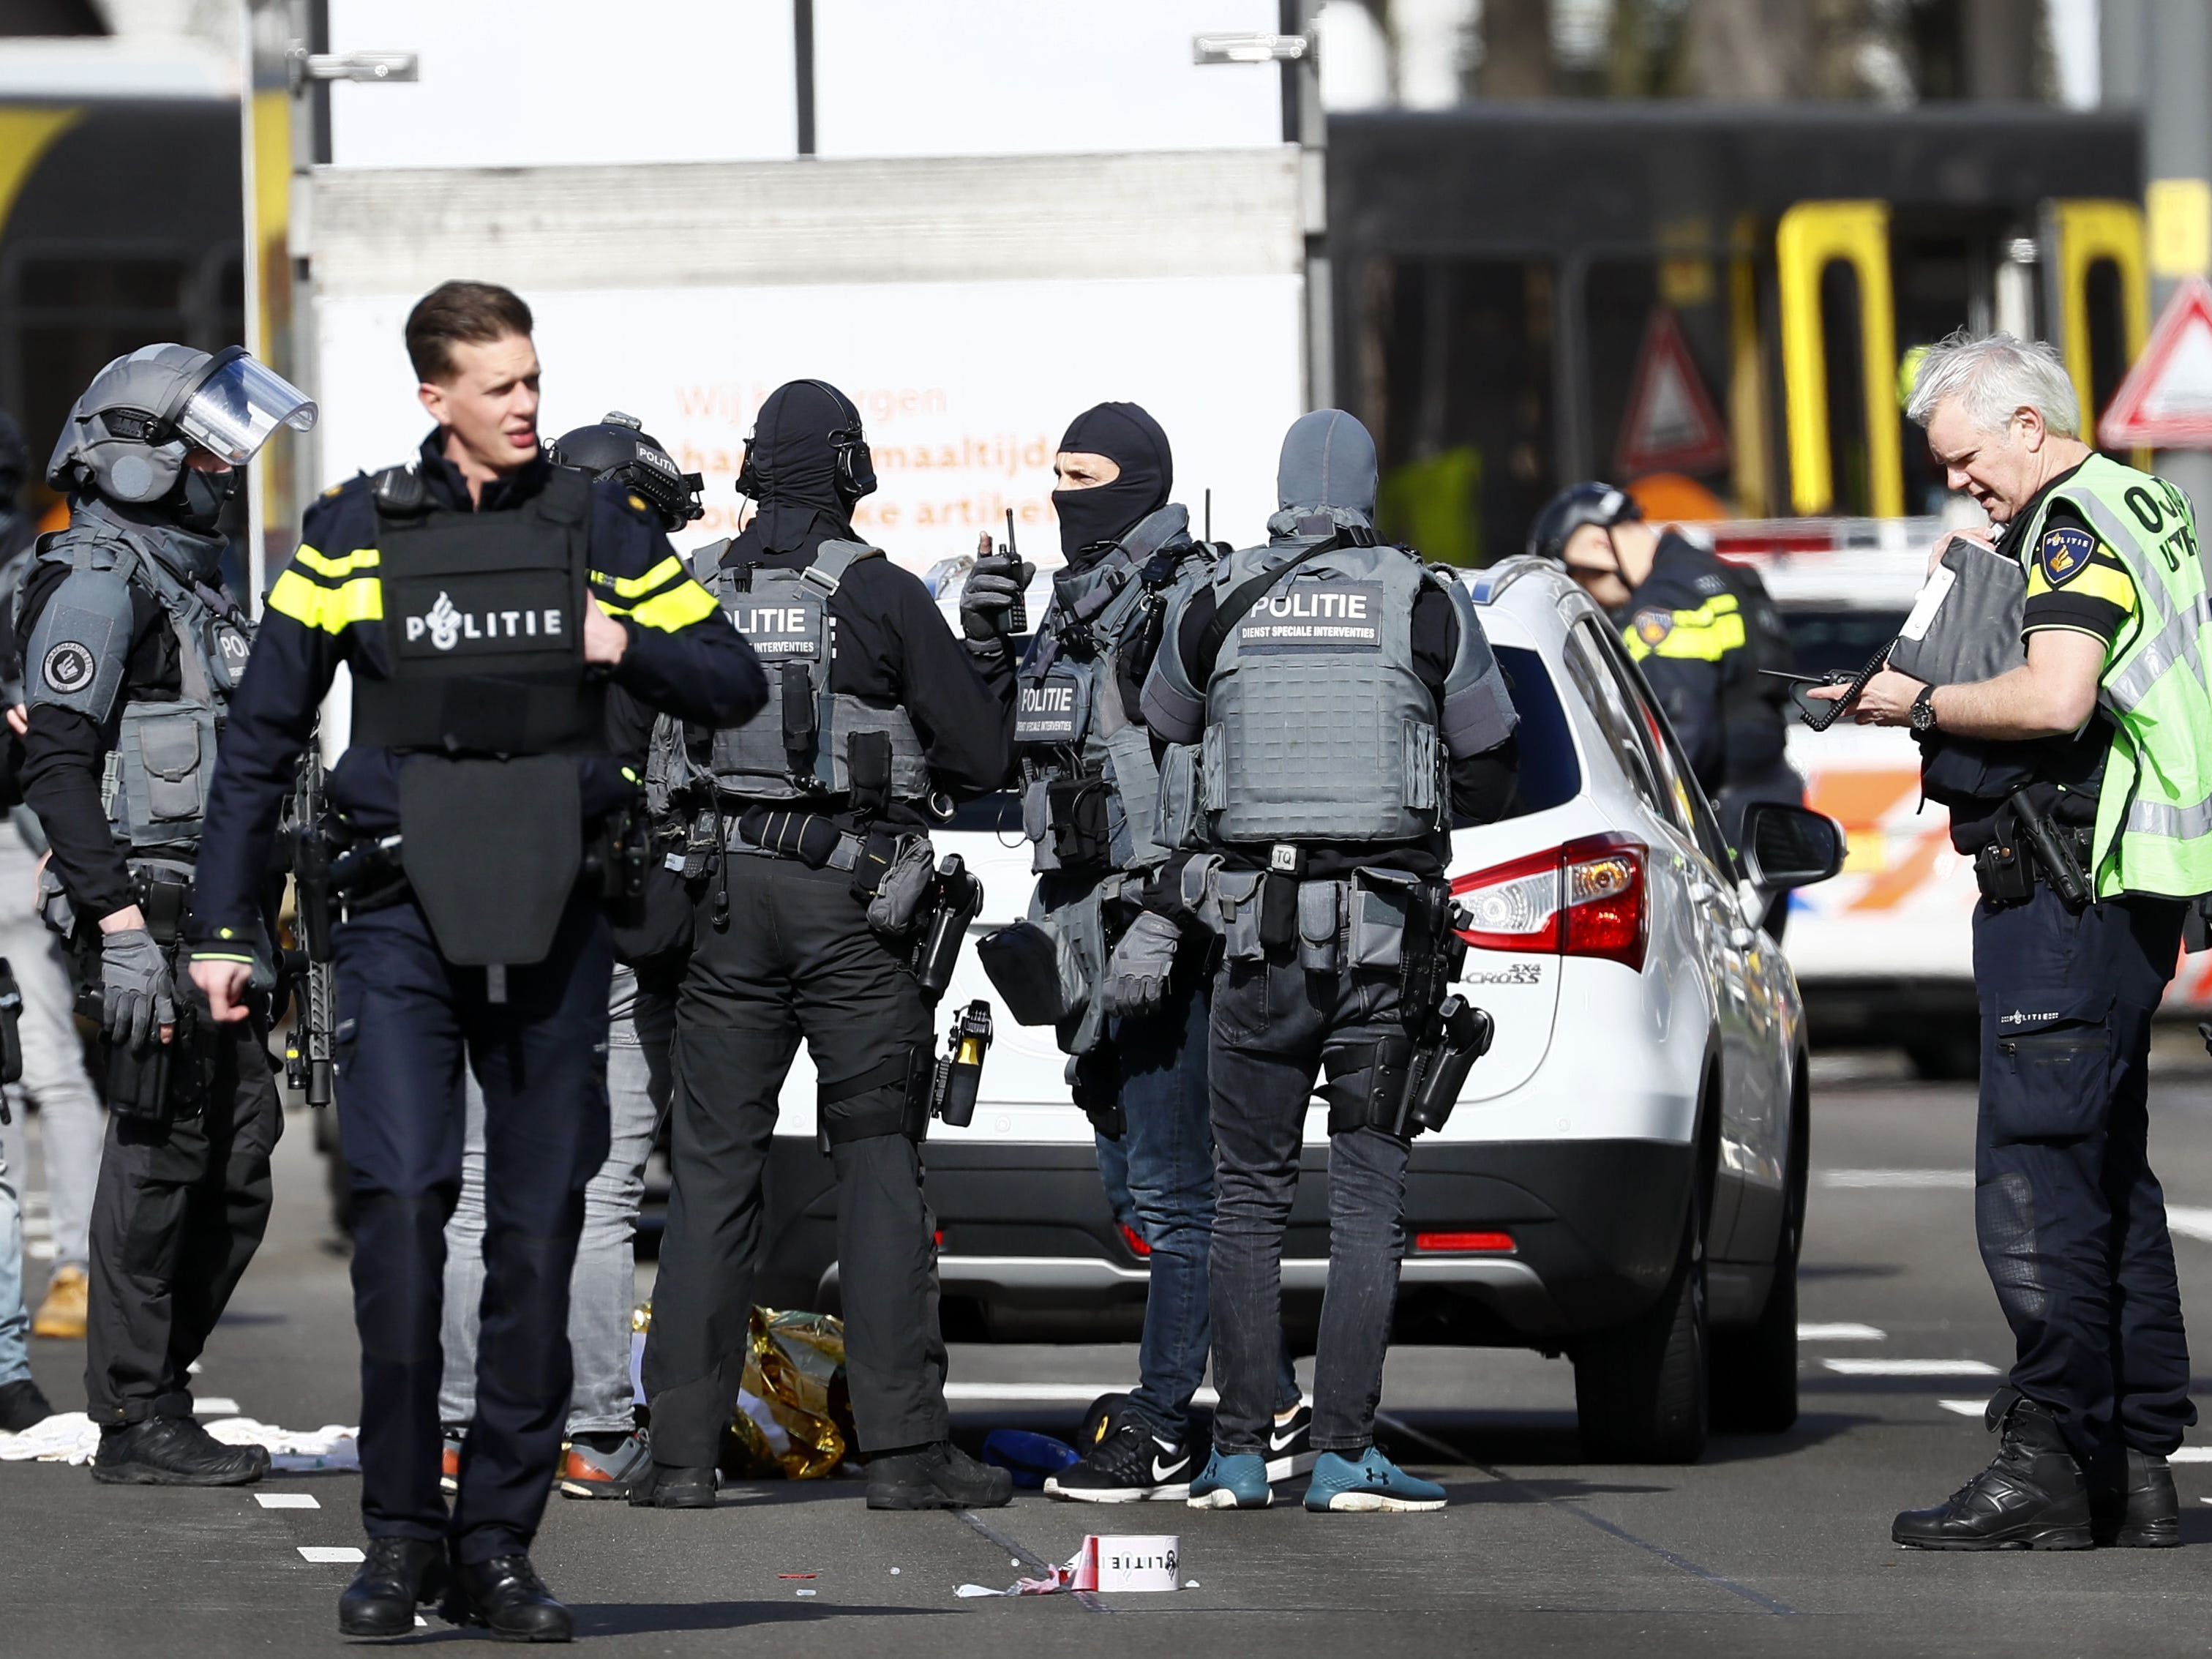 Police forces stand near a tram at the 24 Oktoberplace in Utrecht, on March 18, 2019 where a shooting took place.